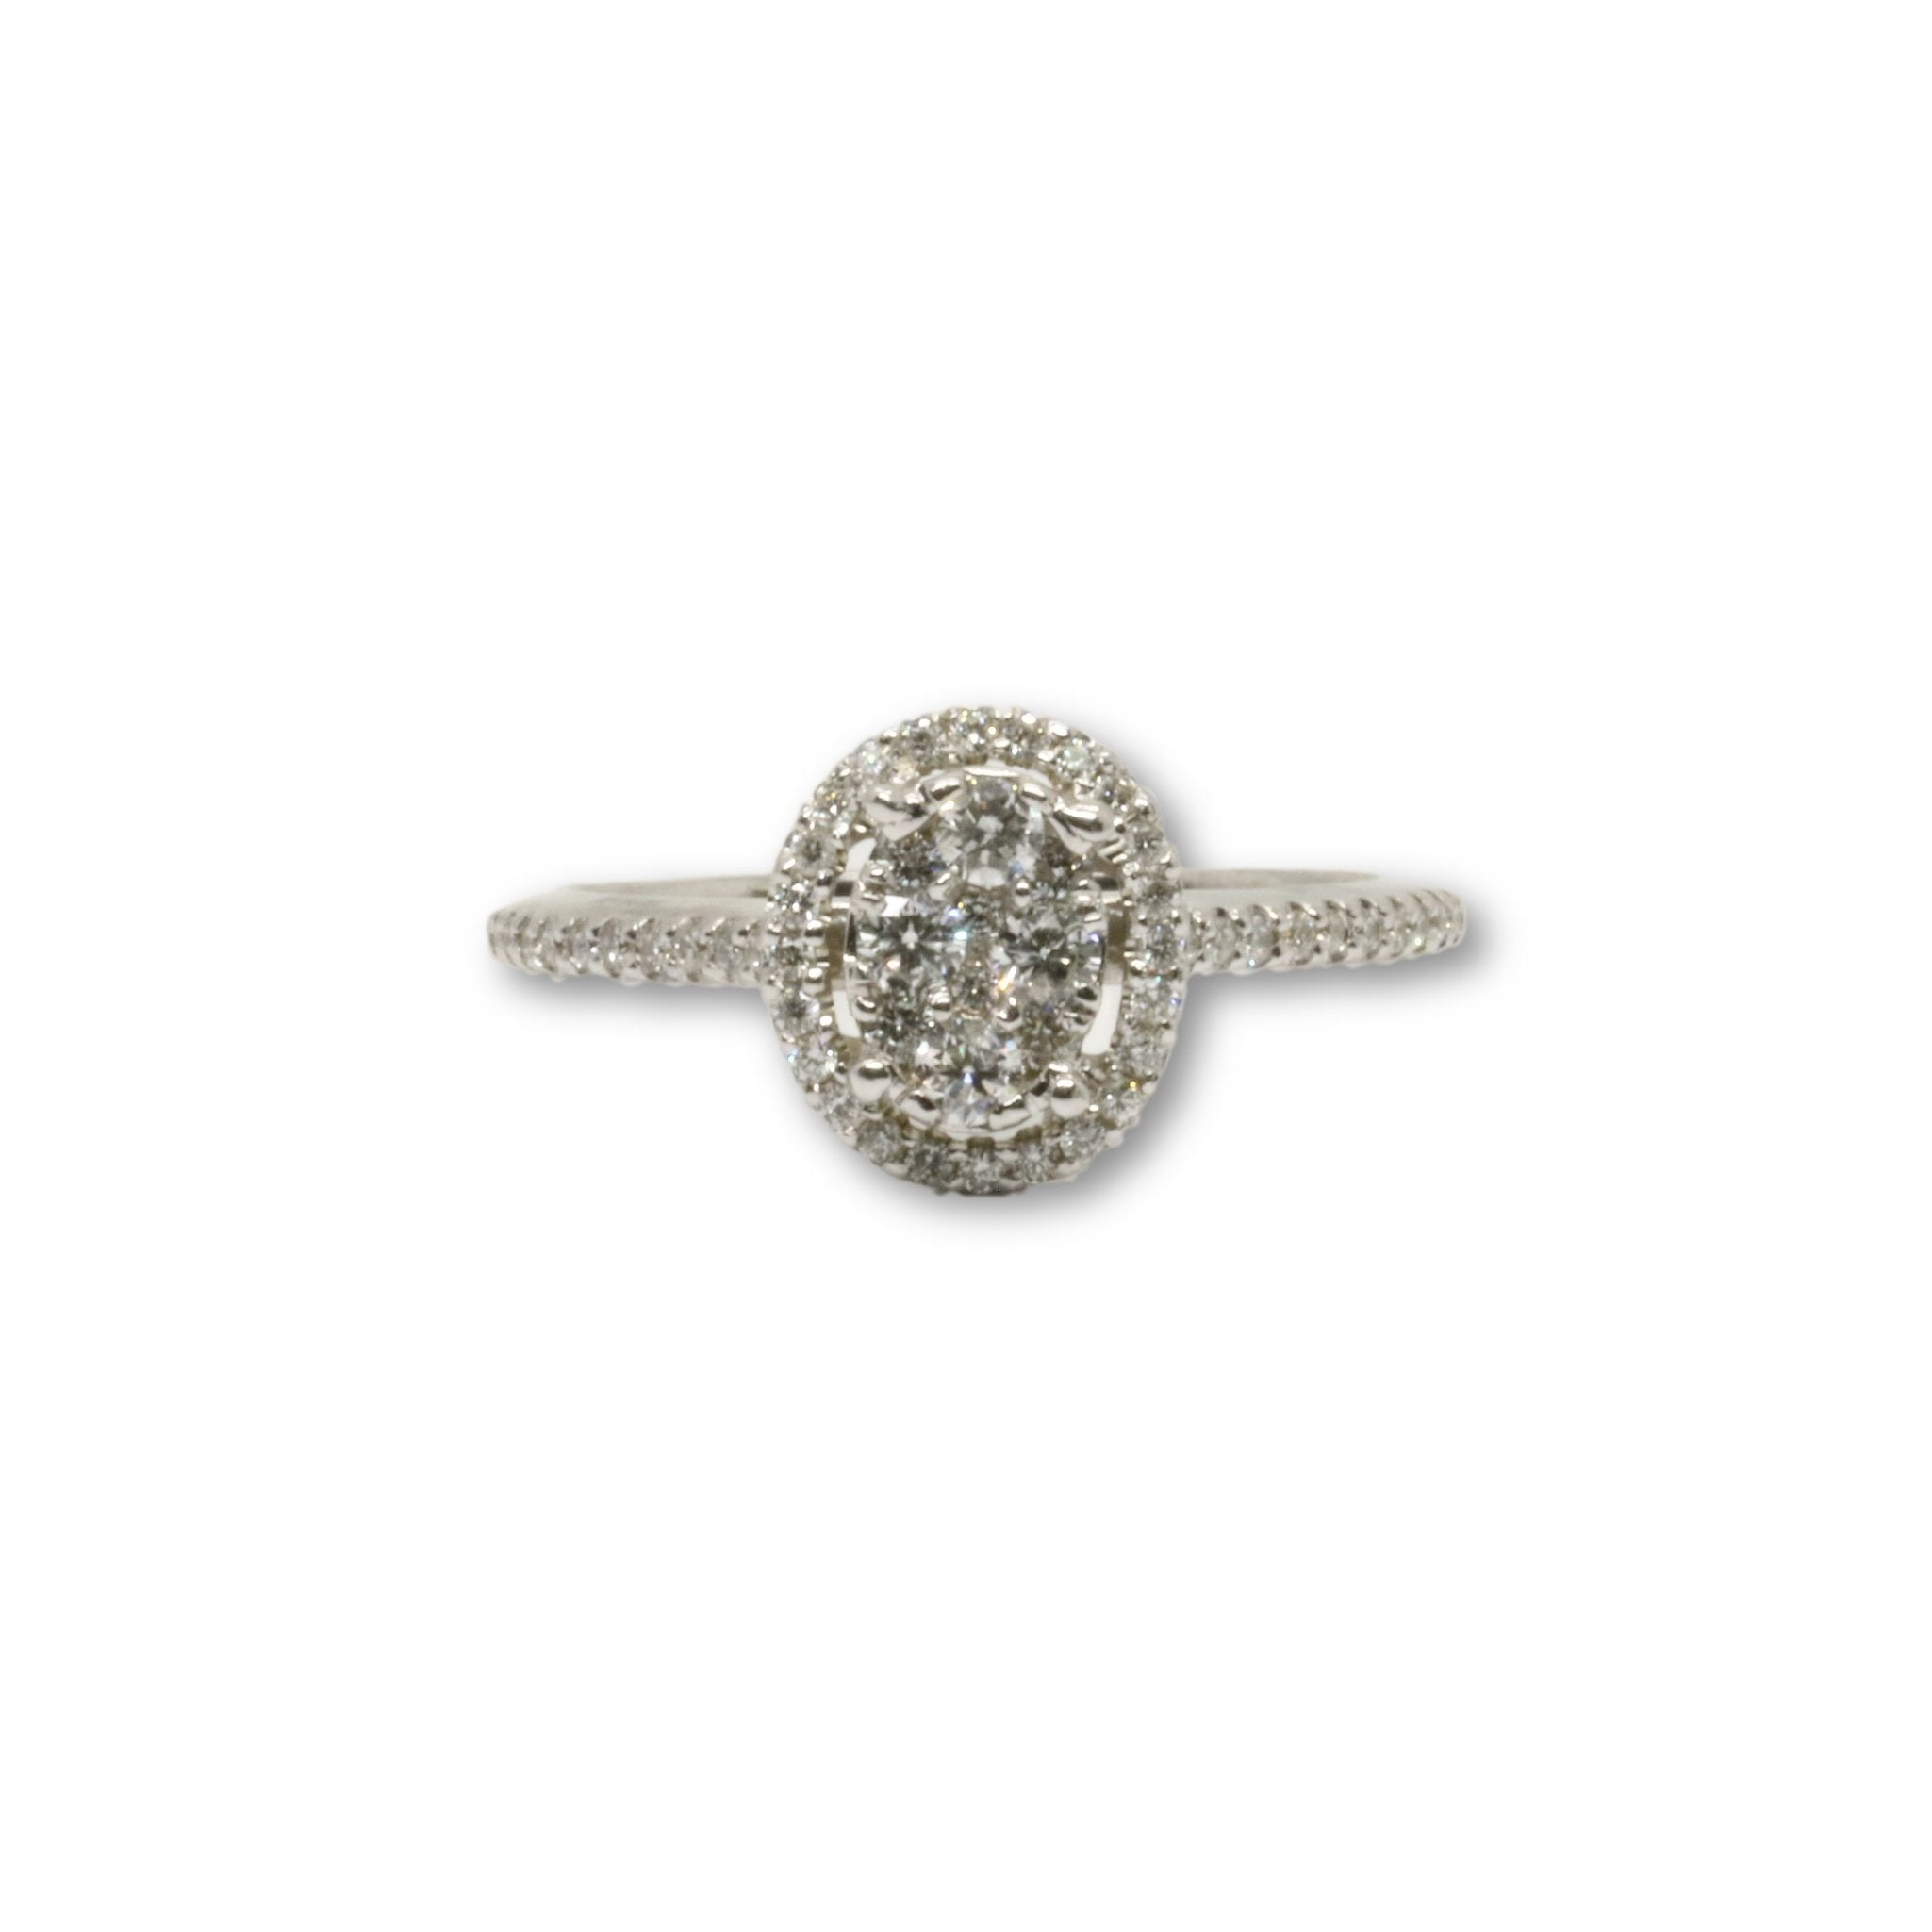 Bague Luckyy 0.40ct diamants en or 14k - orquebec